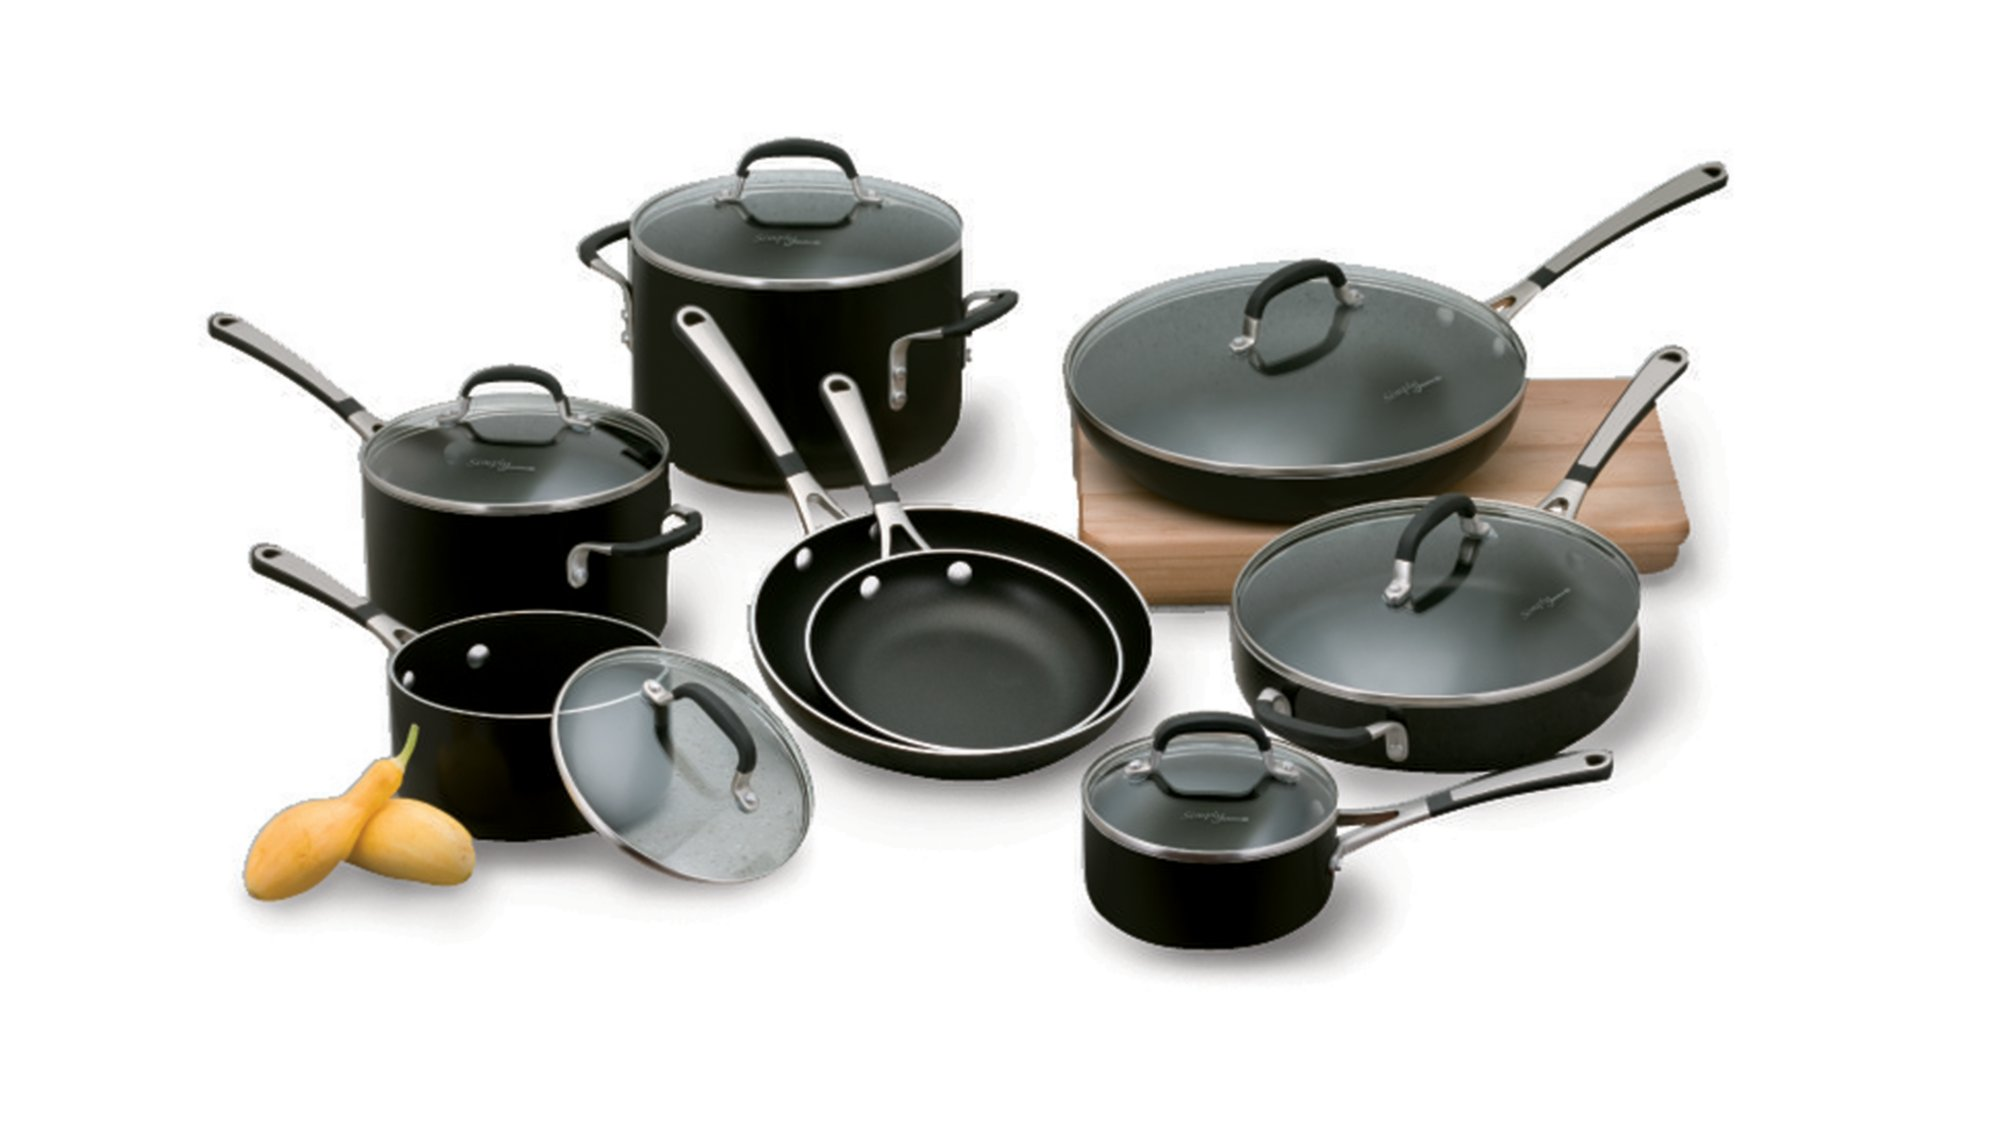 Simply Calphalon Nonstick Black Enamel 14-pc. Cookware Set